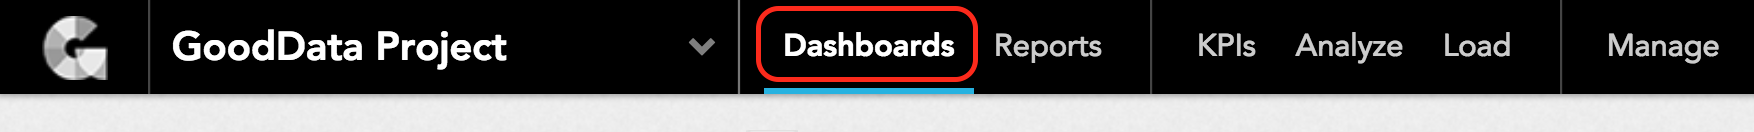 Dashboards_section.png